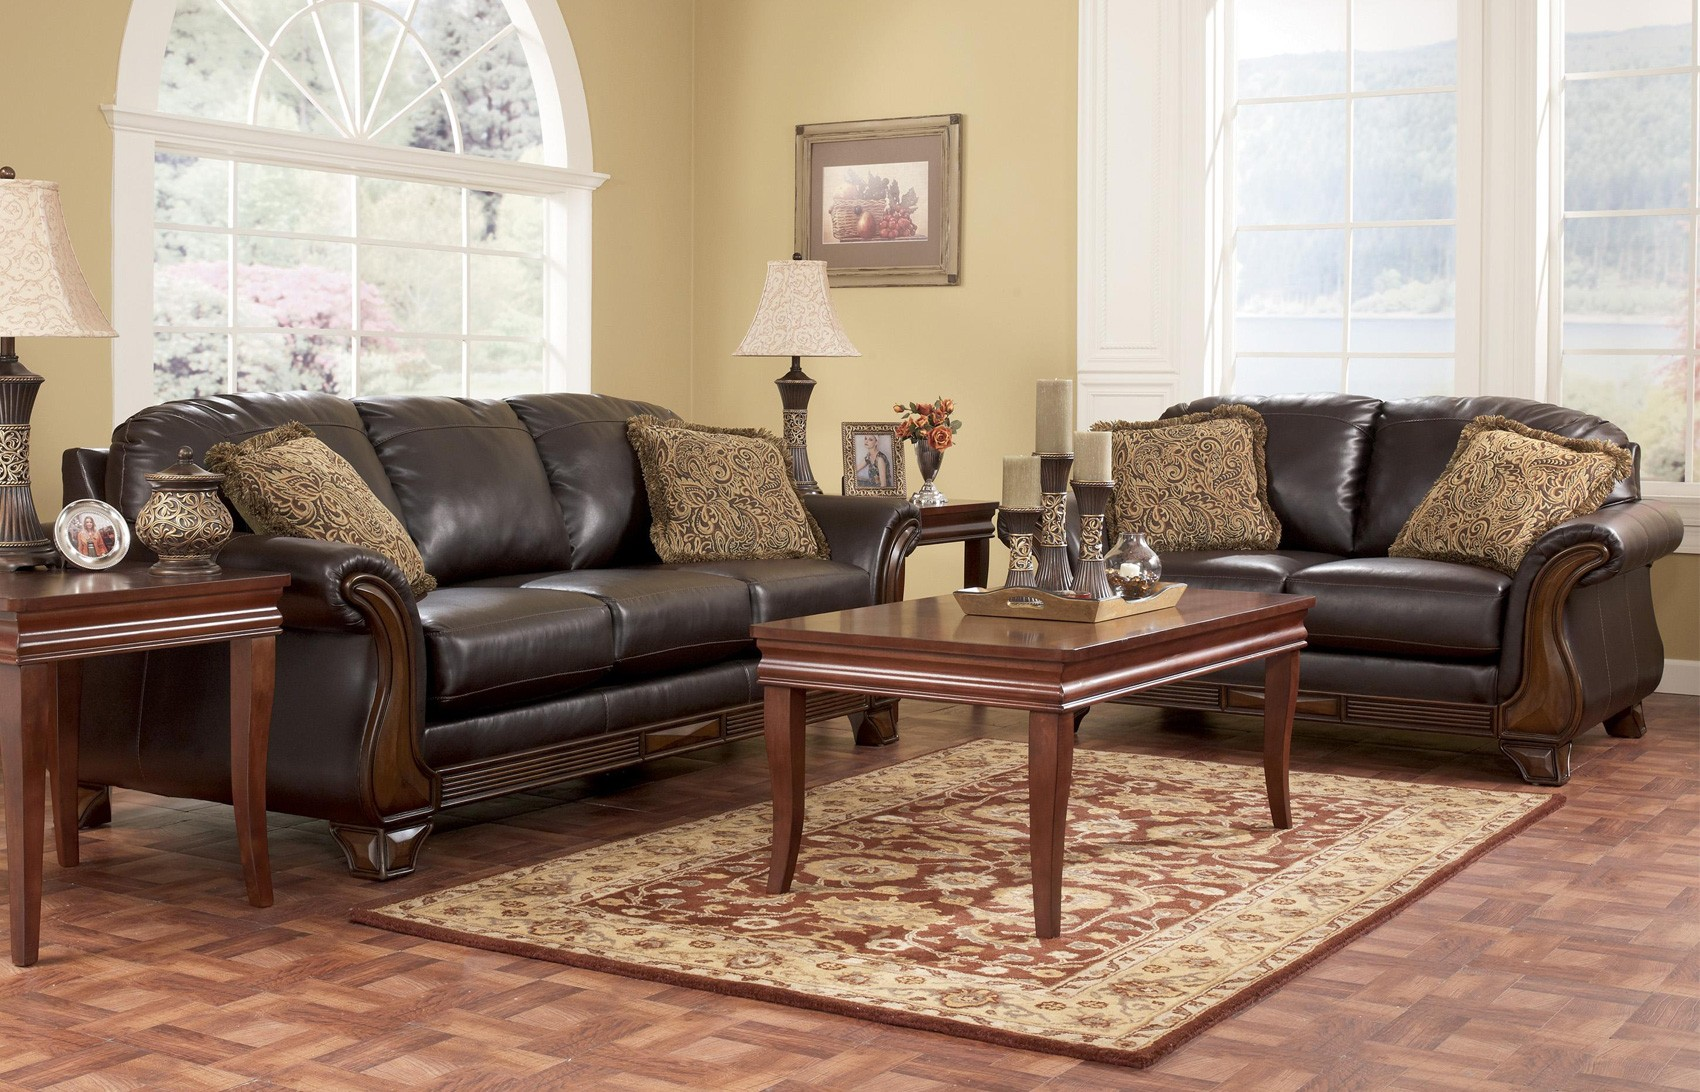 Ashley furniture living room set for 999 modern house for Furniture living room set